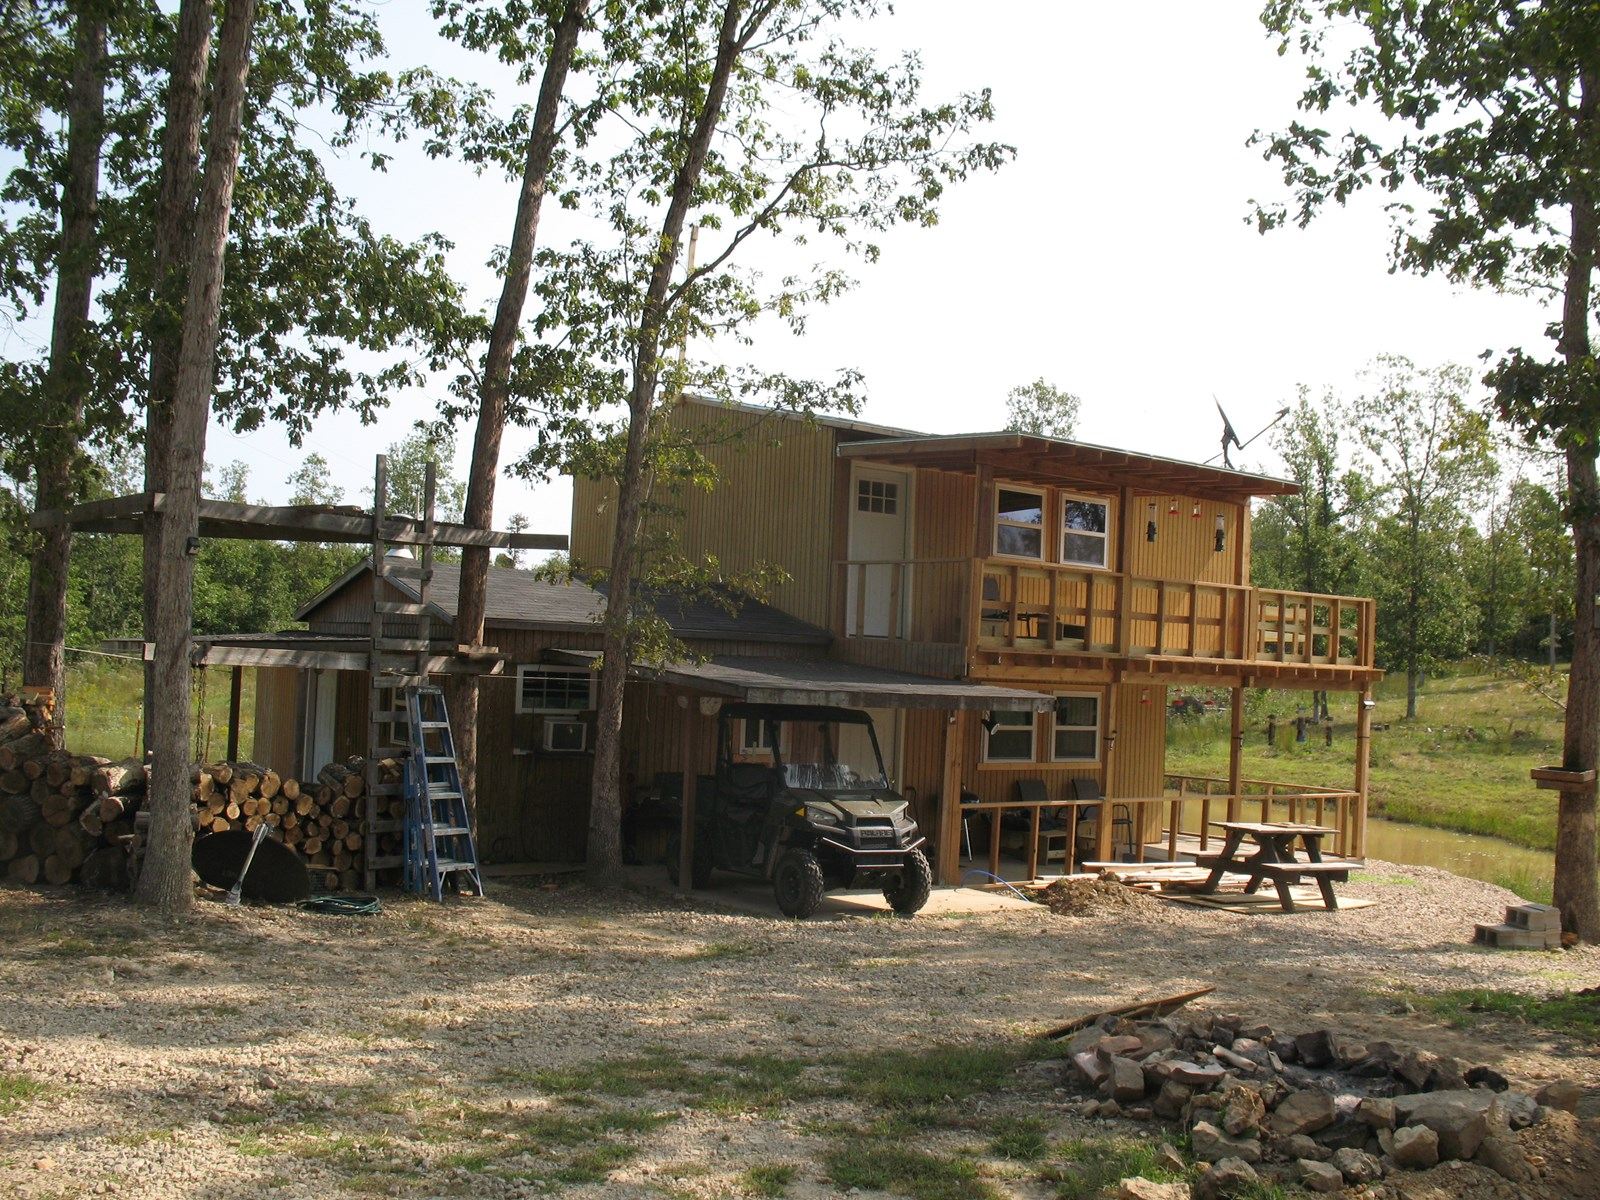 Country Home for Sale in Scenic Southern Missouri Ozarks